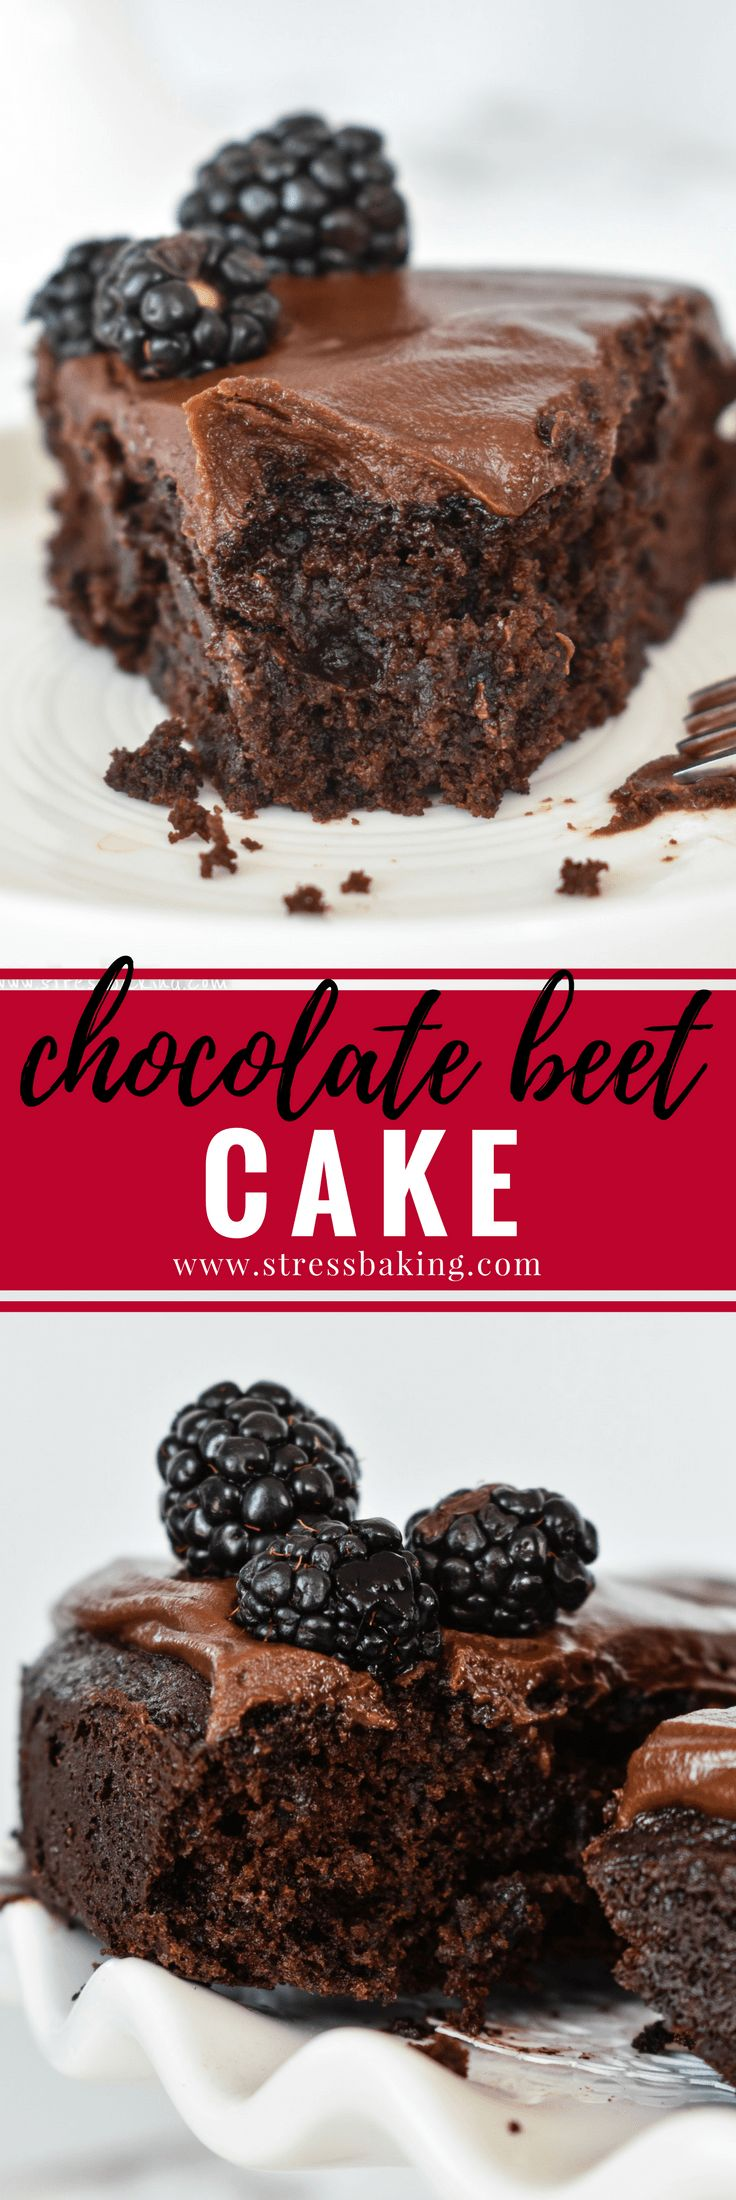 Chocolate Beet Cake: This dark chocolate cake with a moist and tender crumb includes a vegetable that no one would ever know is hidden inside: beets!